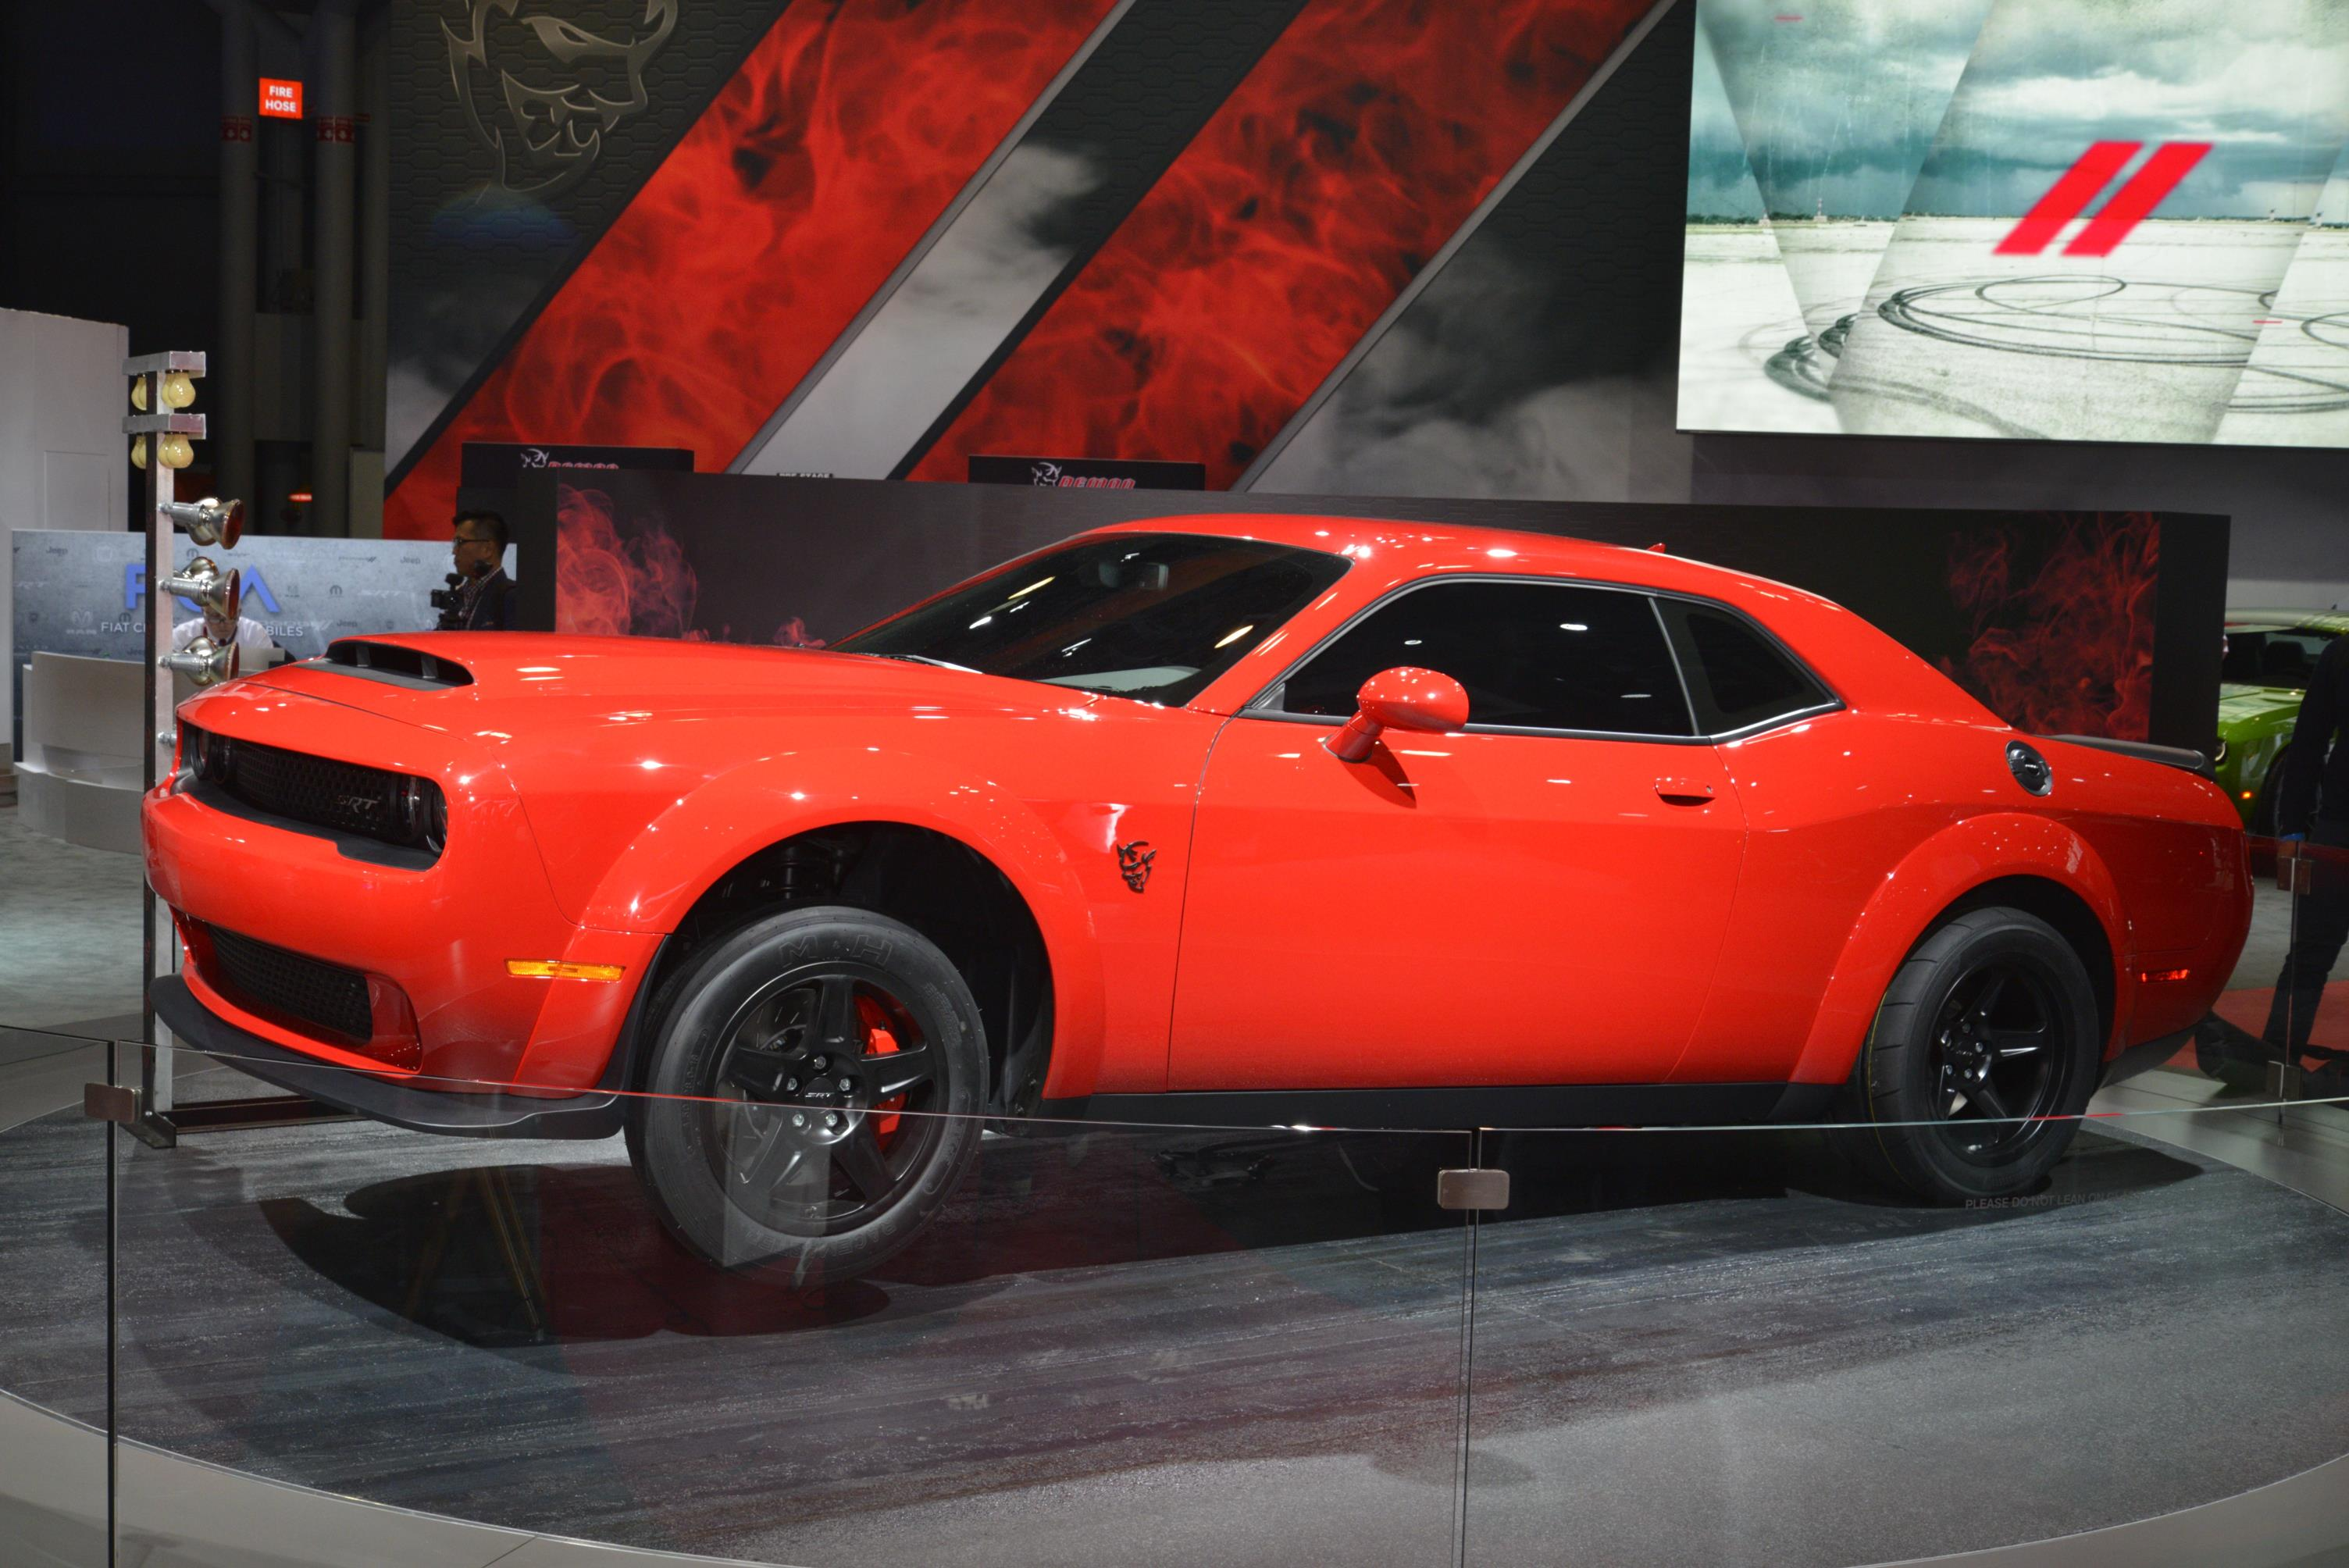 2018 DODGE CHALLENGER SRT DEMON - myAutoWorld.com